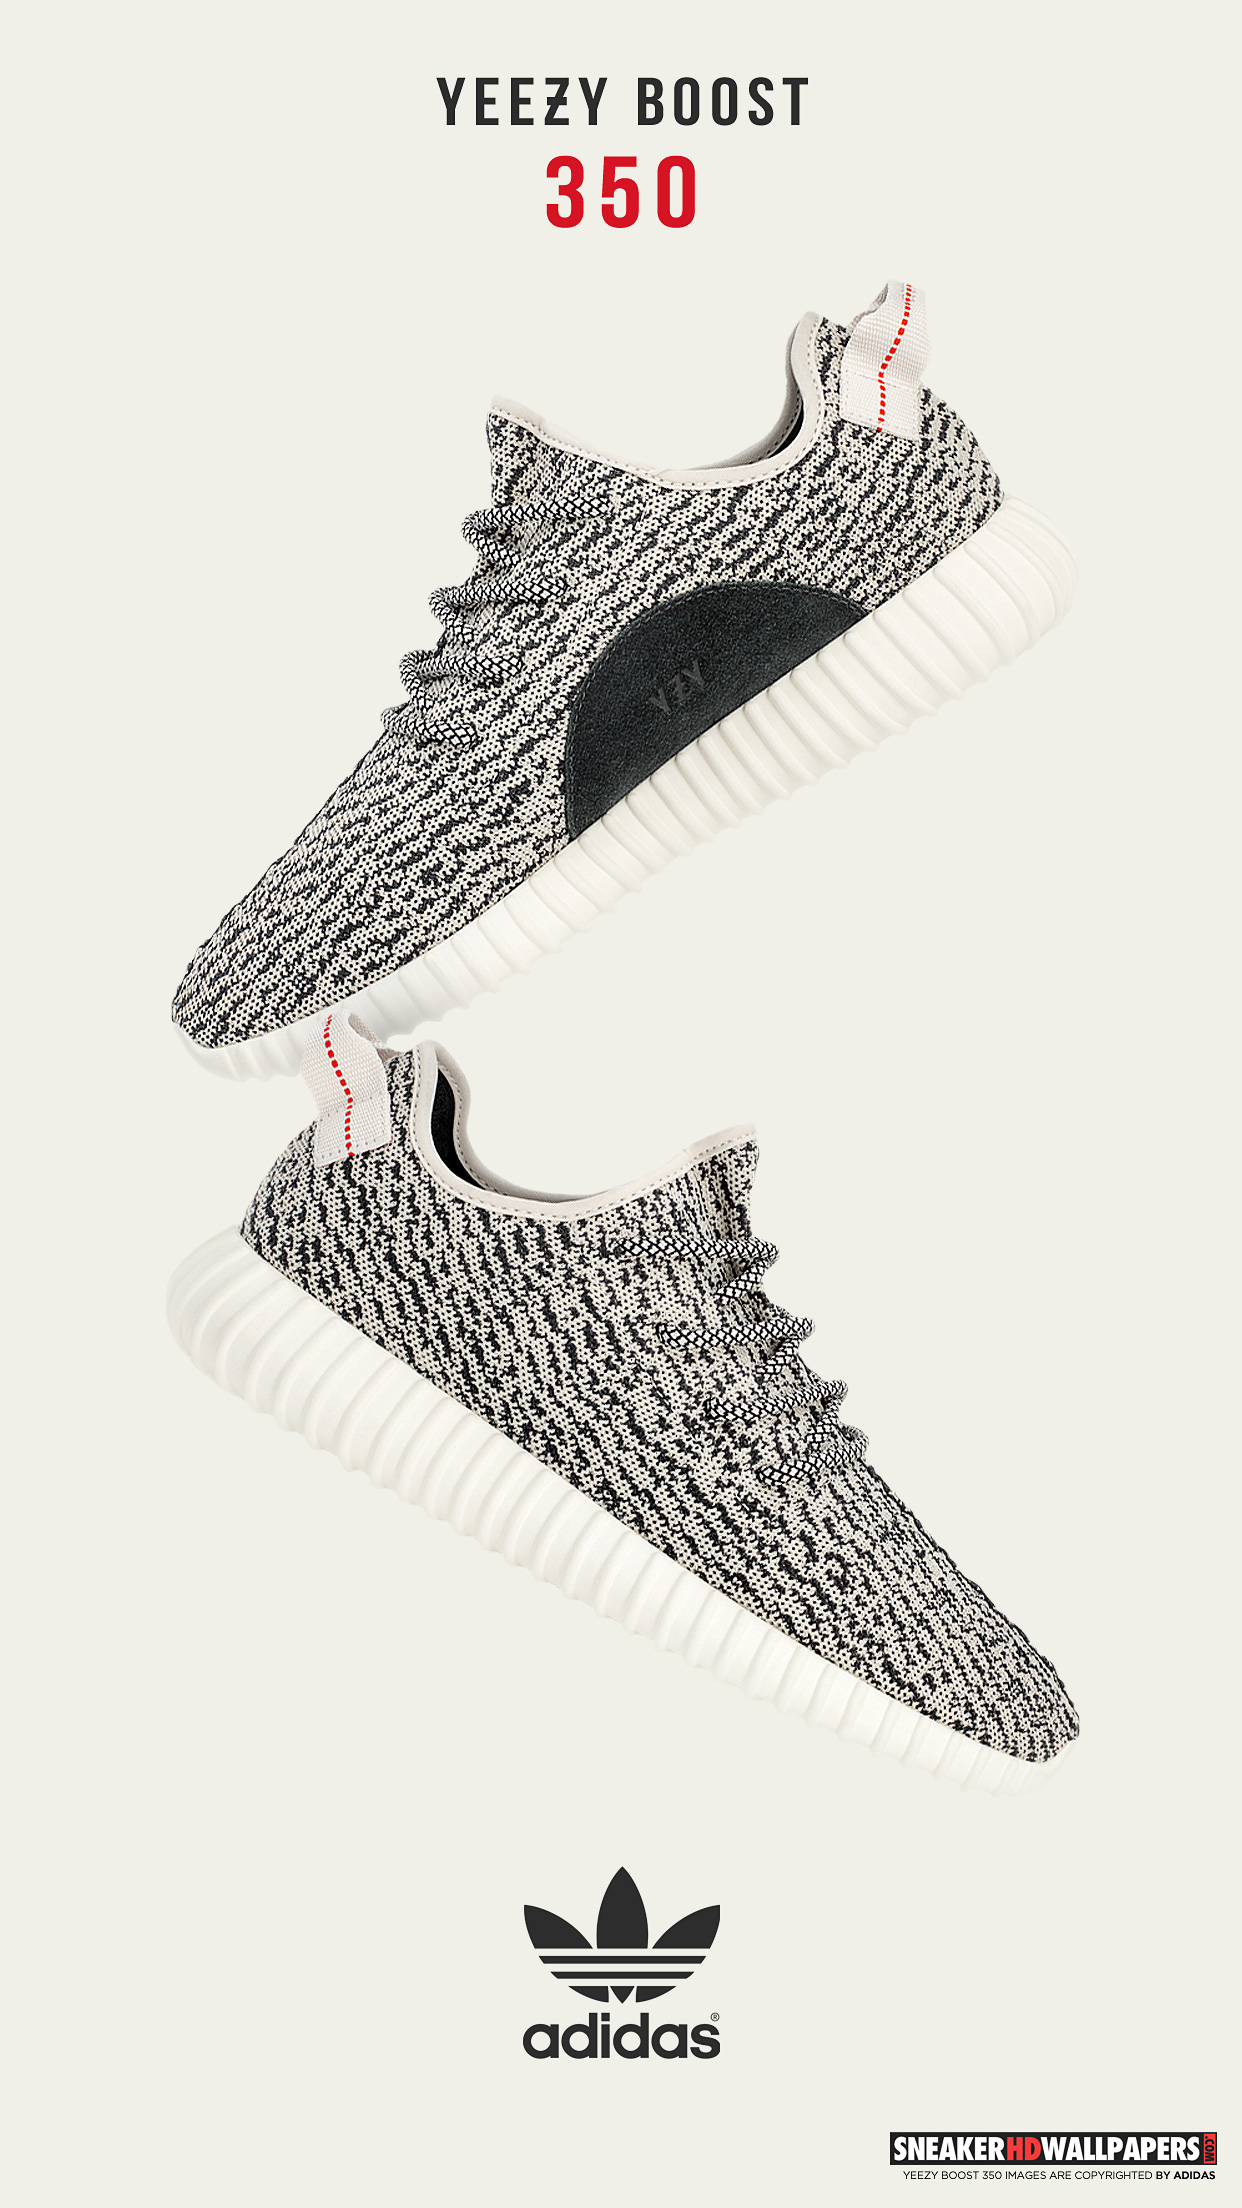 YEEZY BOOST 350 WALLPAPERS FREE Wallpapers Background images 1242x2208